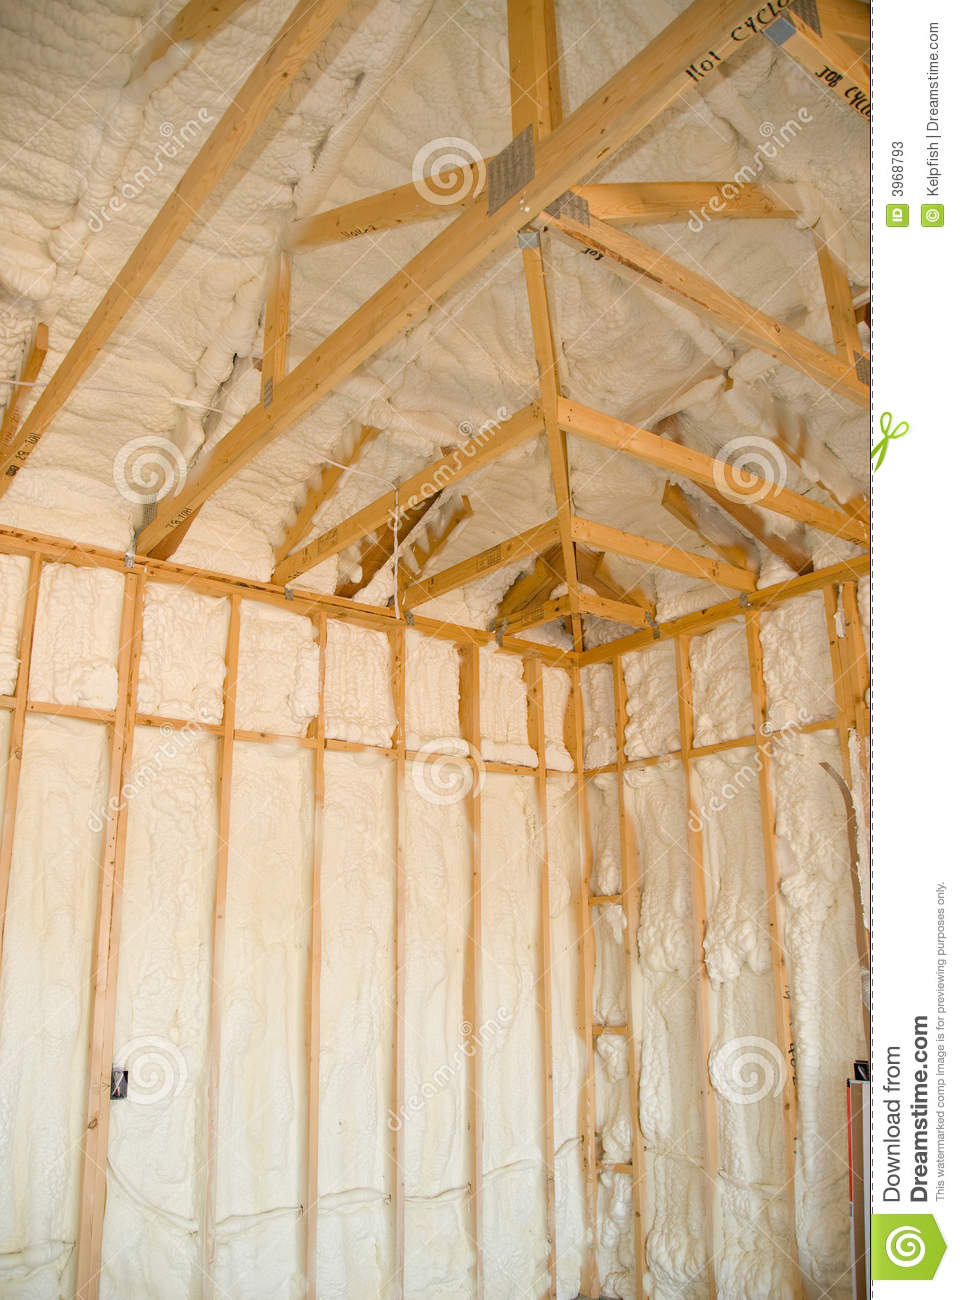 new home insulation stock image image of wood beams